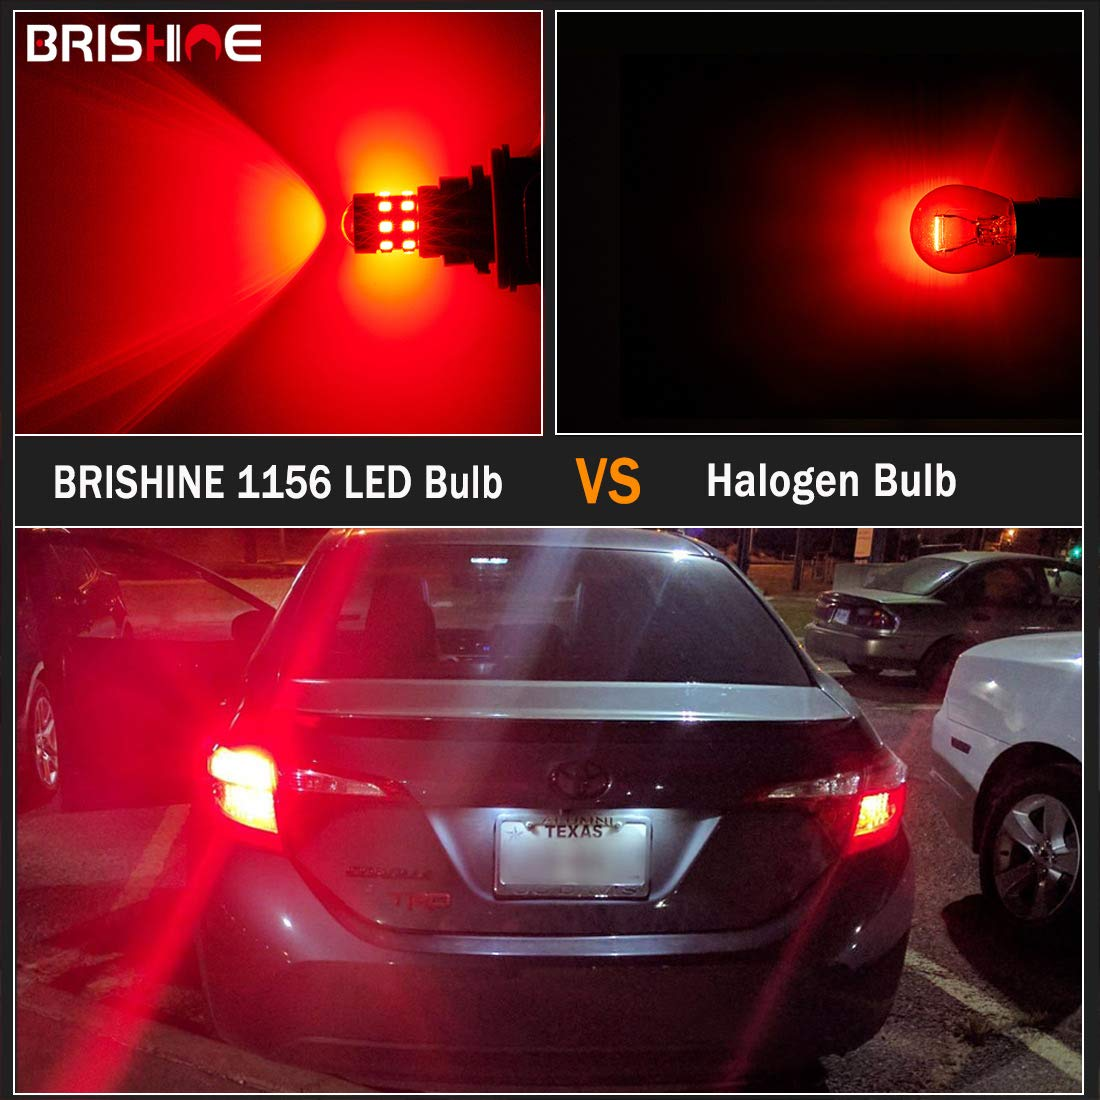 Turn Signal Lights BRISHINE 4-Pack Super Bright 1156 1073 1141 7506 BA15S LED Bulbs Brilliant Red 9-30V Non-Polarity 24-SMD LED Chipsets with Projector for Brake Tail Lights